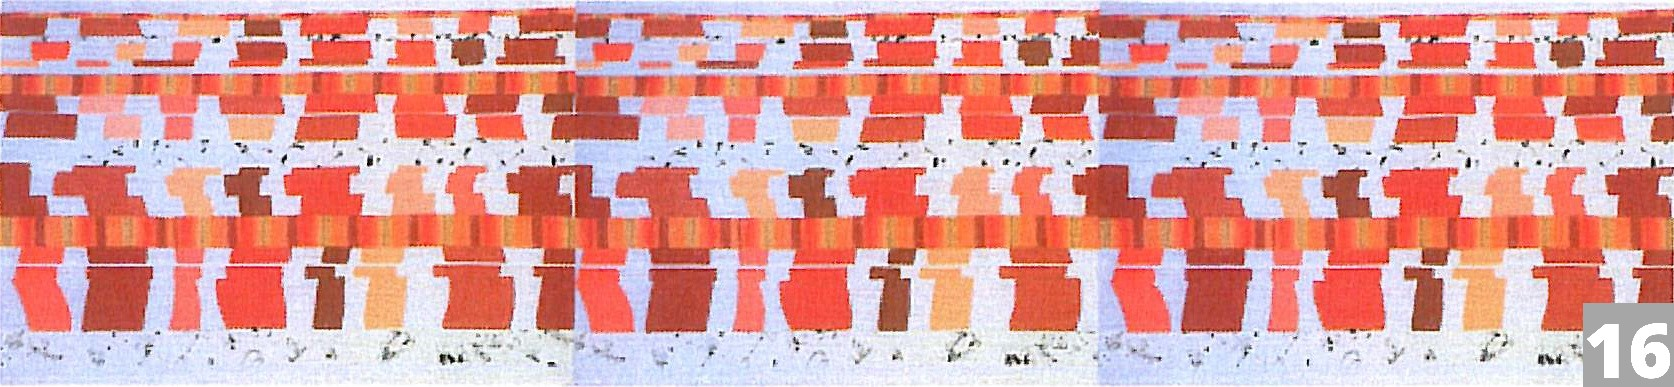 red and orange geometric shapes on white